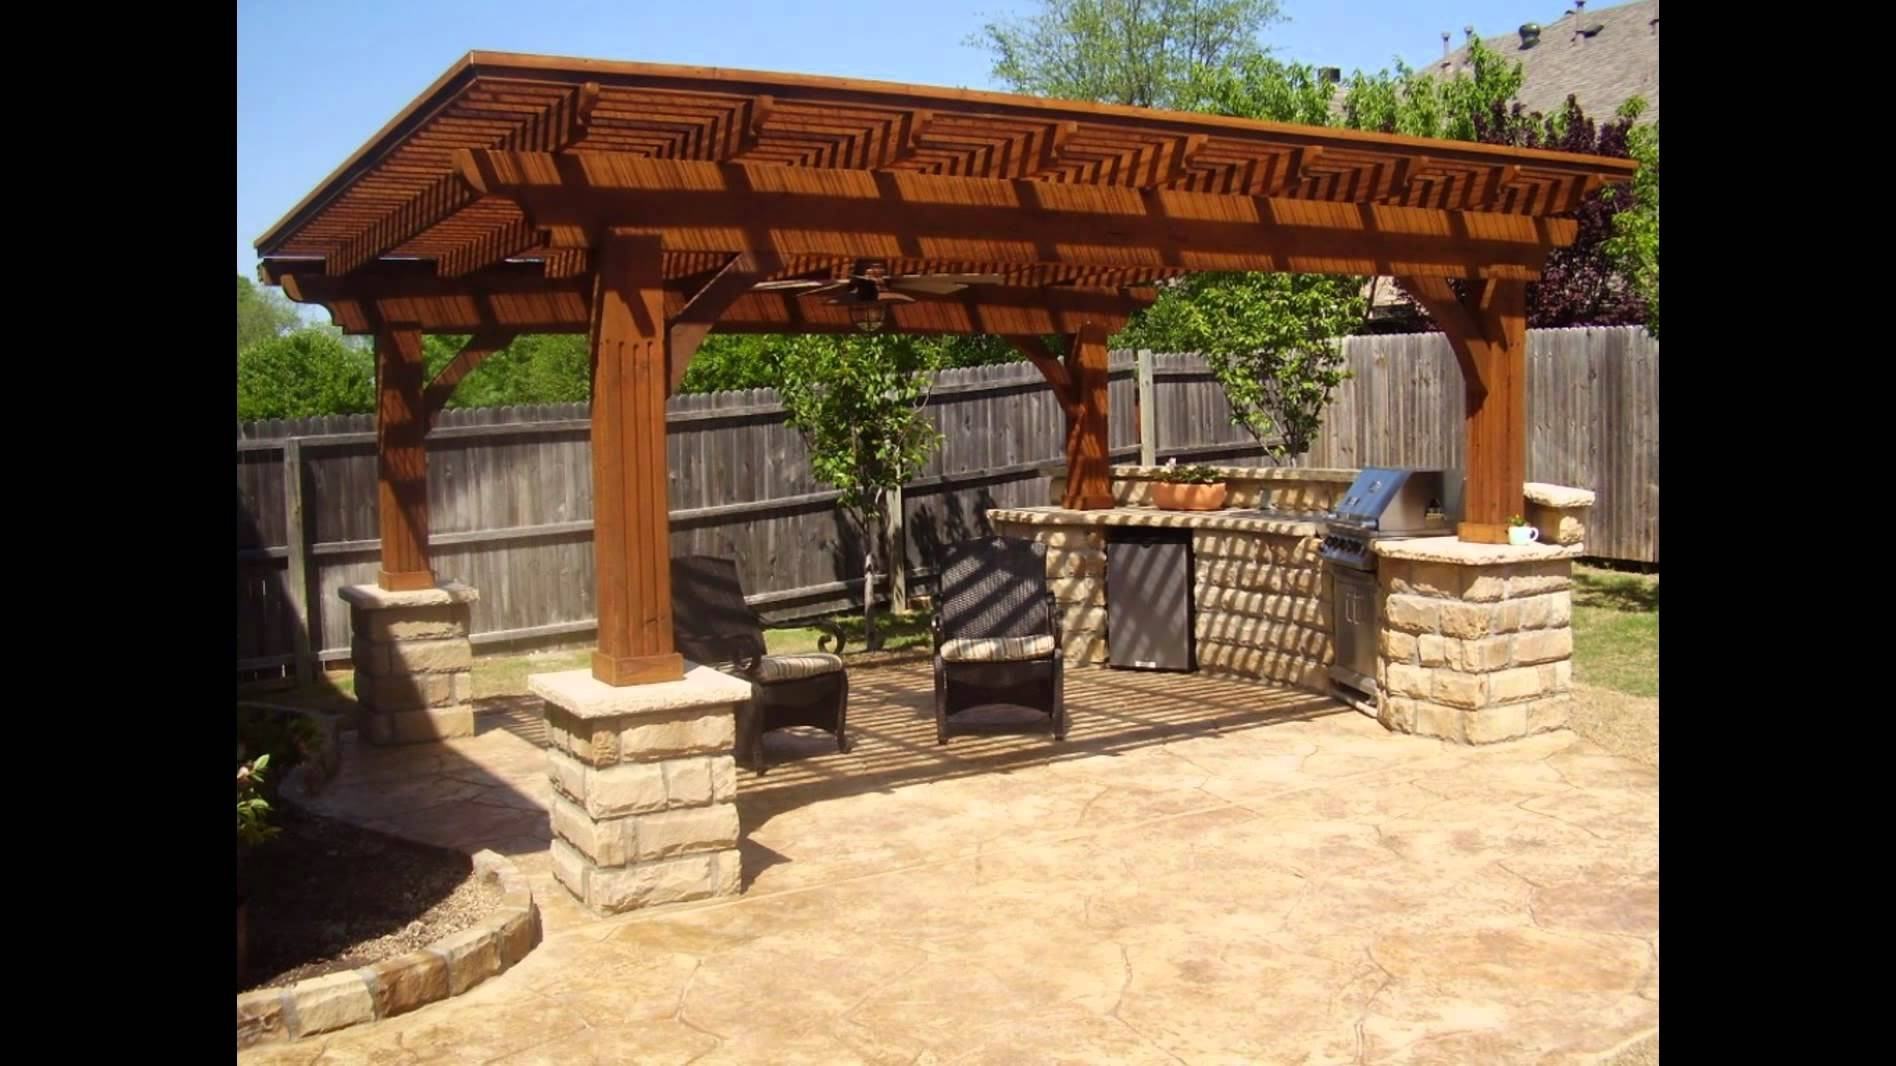 Innovative Backyard Grill Patio Ideas Bbq Designs Jeemainco within Backyard Grill Ideas